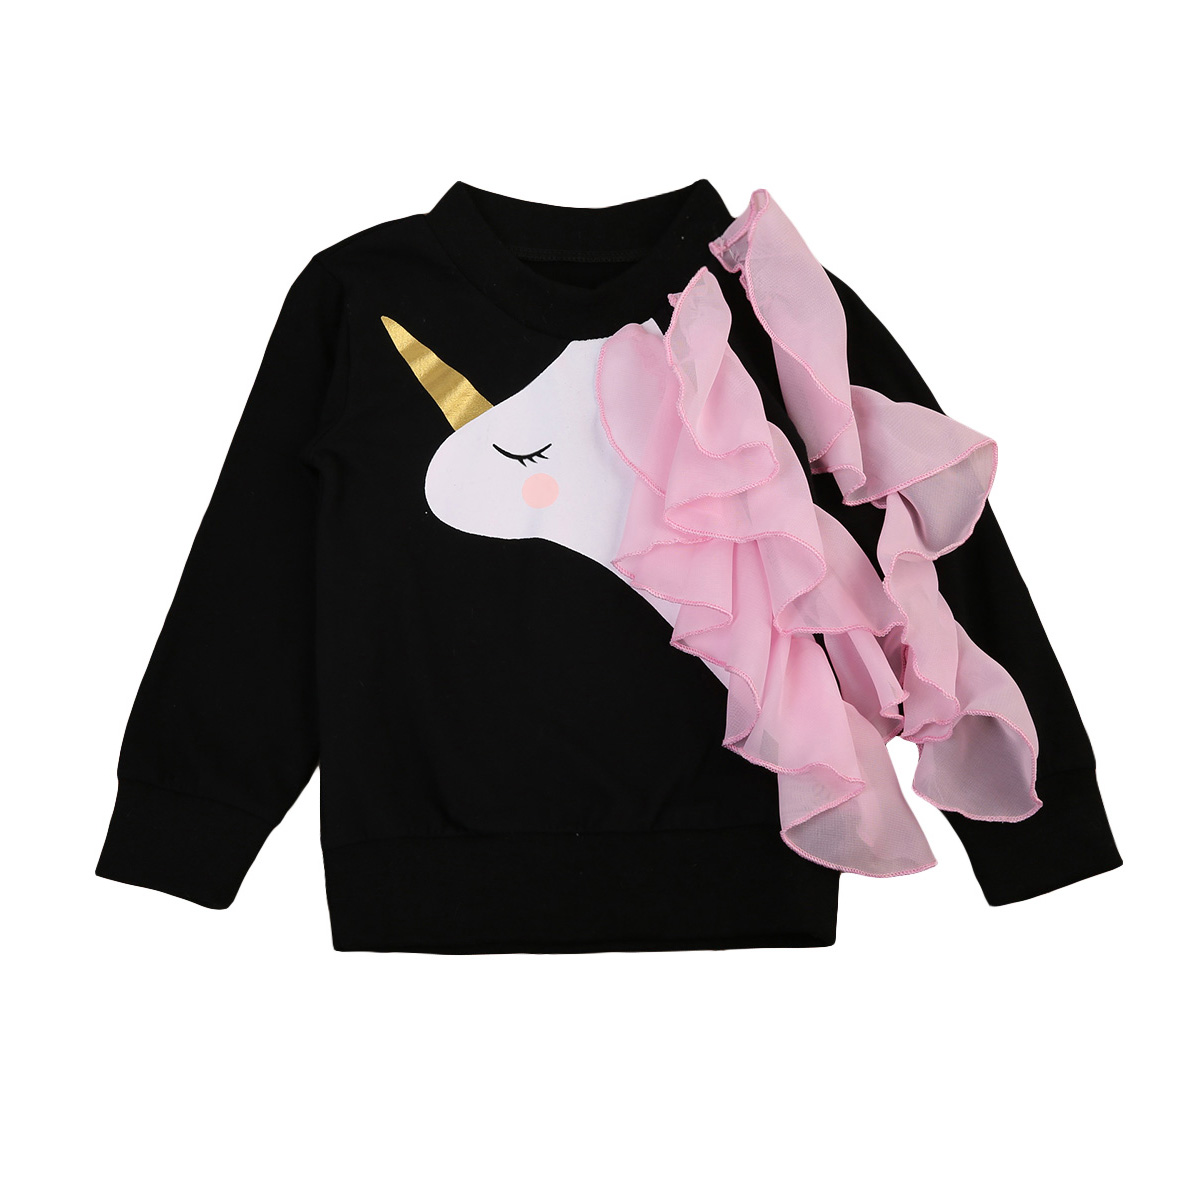 New Newborn Baby Girls Long Sleeve Cute Unicorn Sweet Ruffle Tops Sweater Spring Autumn Warm Clothes inc black white women s size xl floral print keyhole back seamed blouse $69